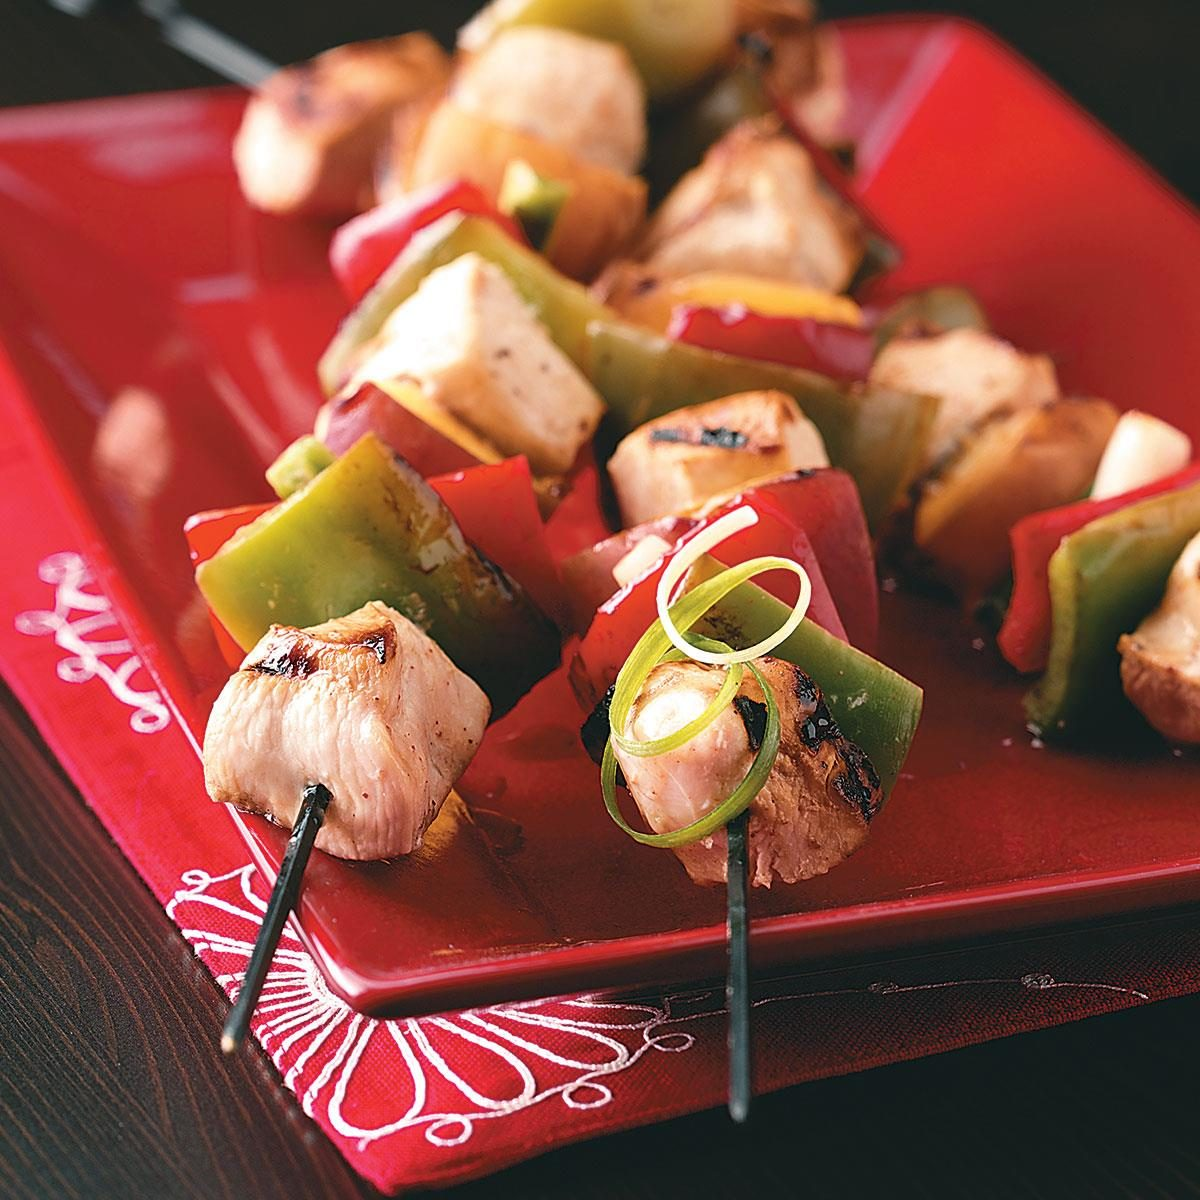 How long do i grill chicken kabobs - How Long Do I Grill Chicken Kabobs 45